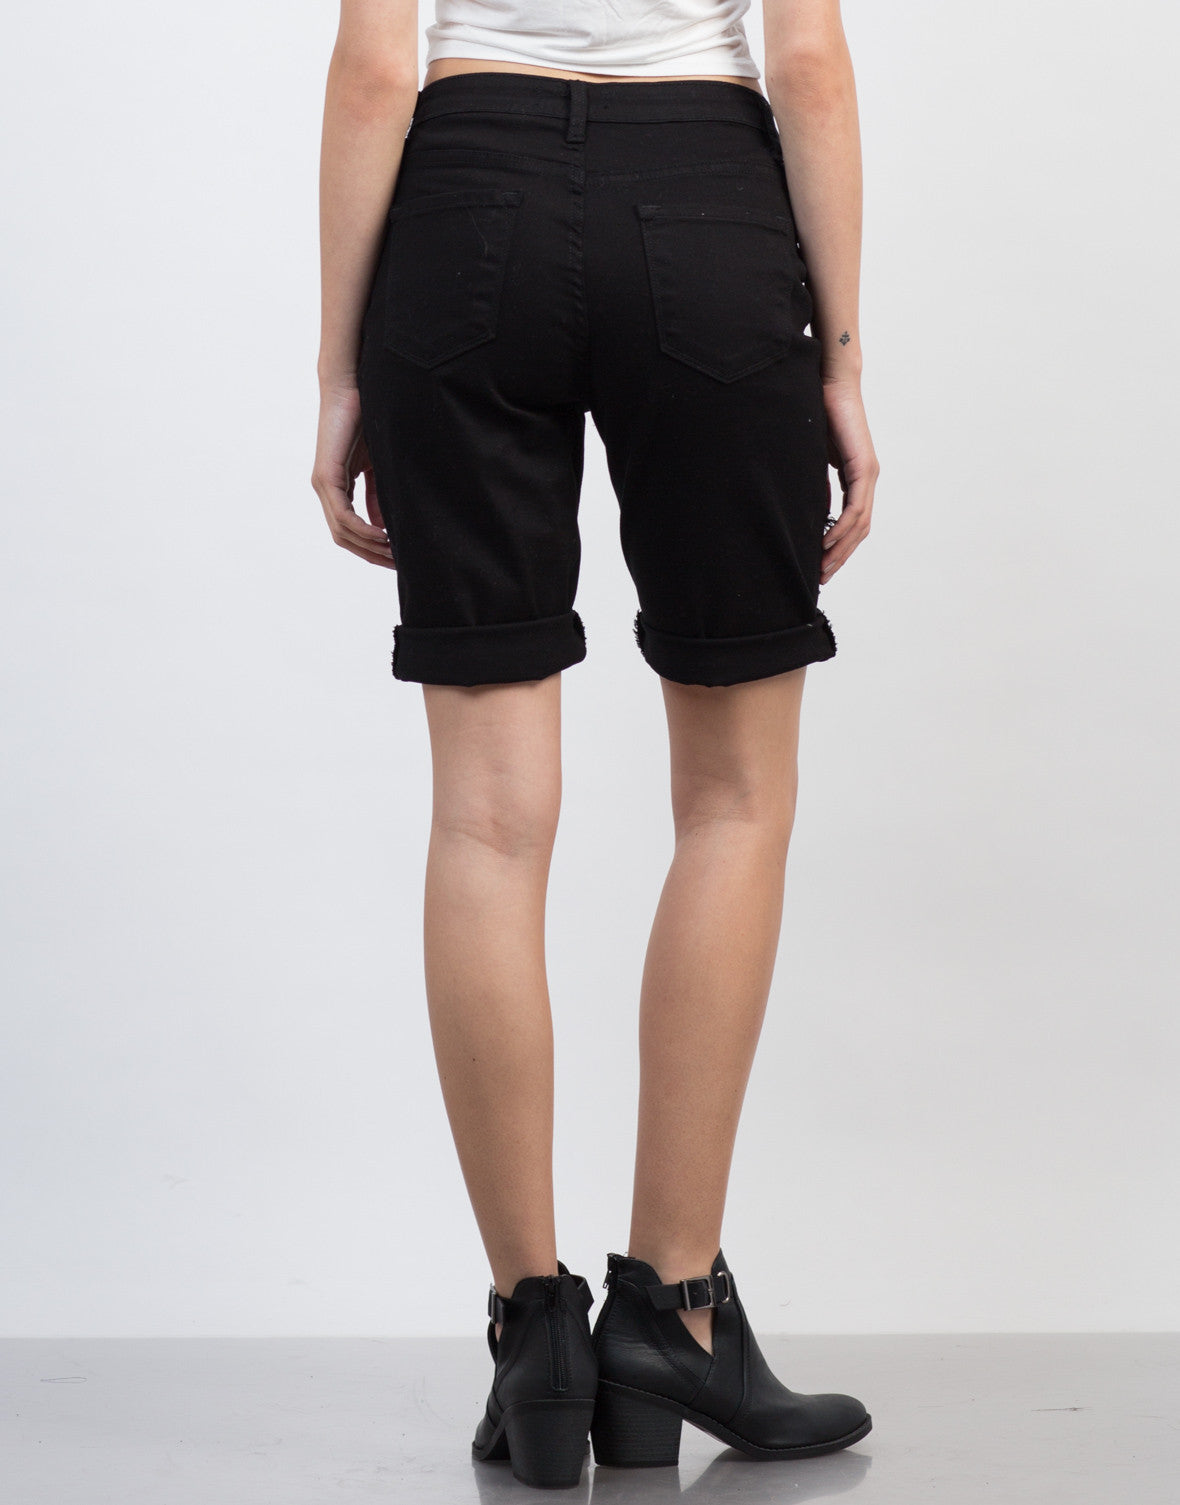 Back View of Relaxed Bermuda Shorts